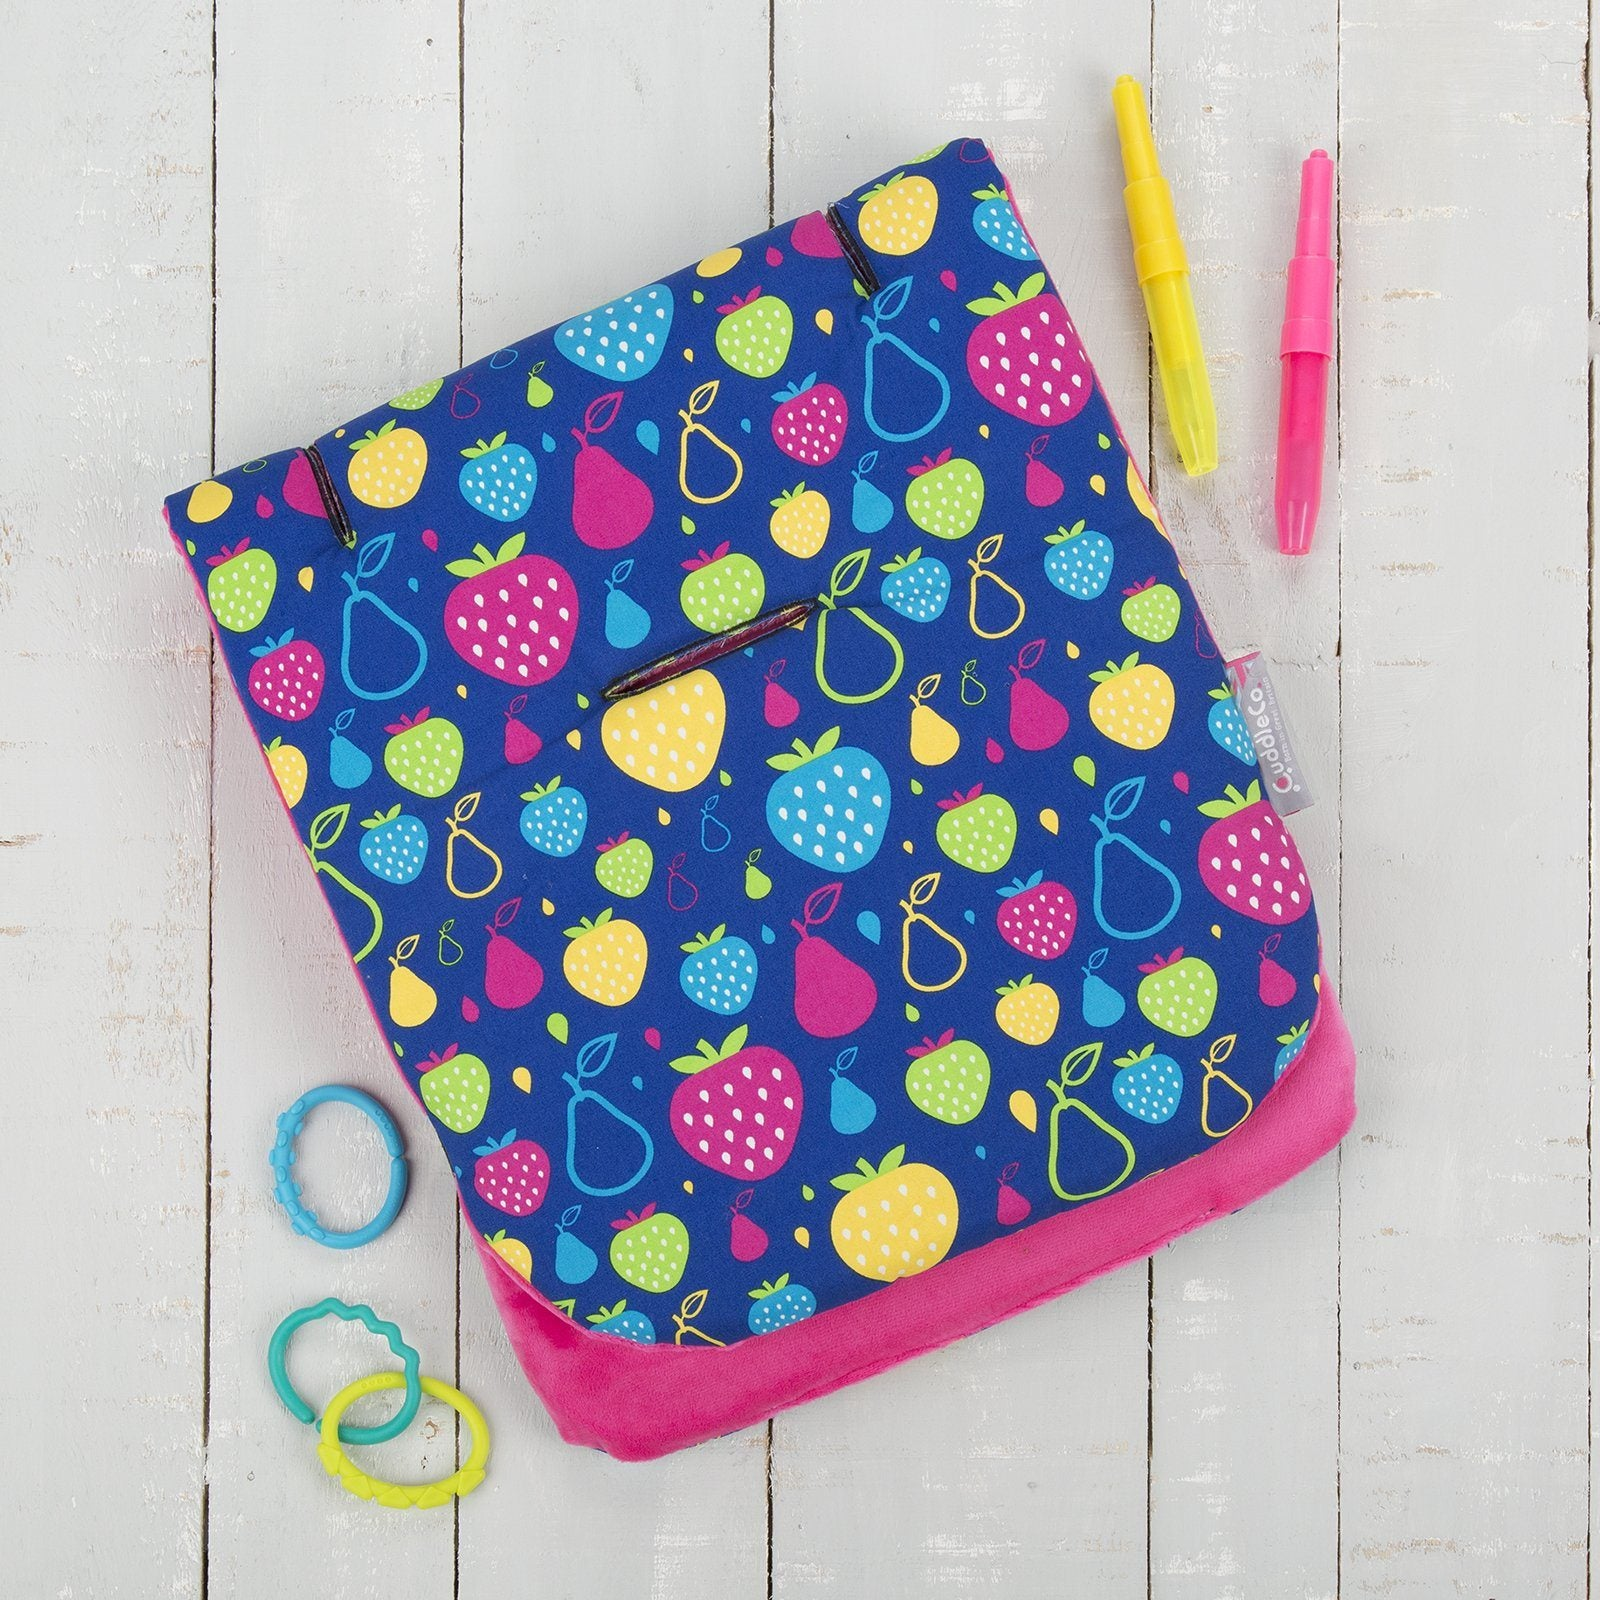 Comfi-Cush Memory Foam Stroller Liner - Fruity Tutti On The Go cuddleco